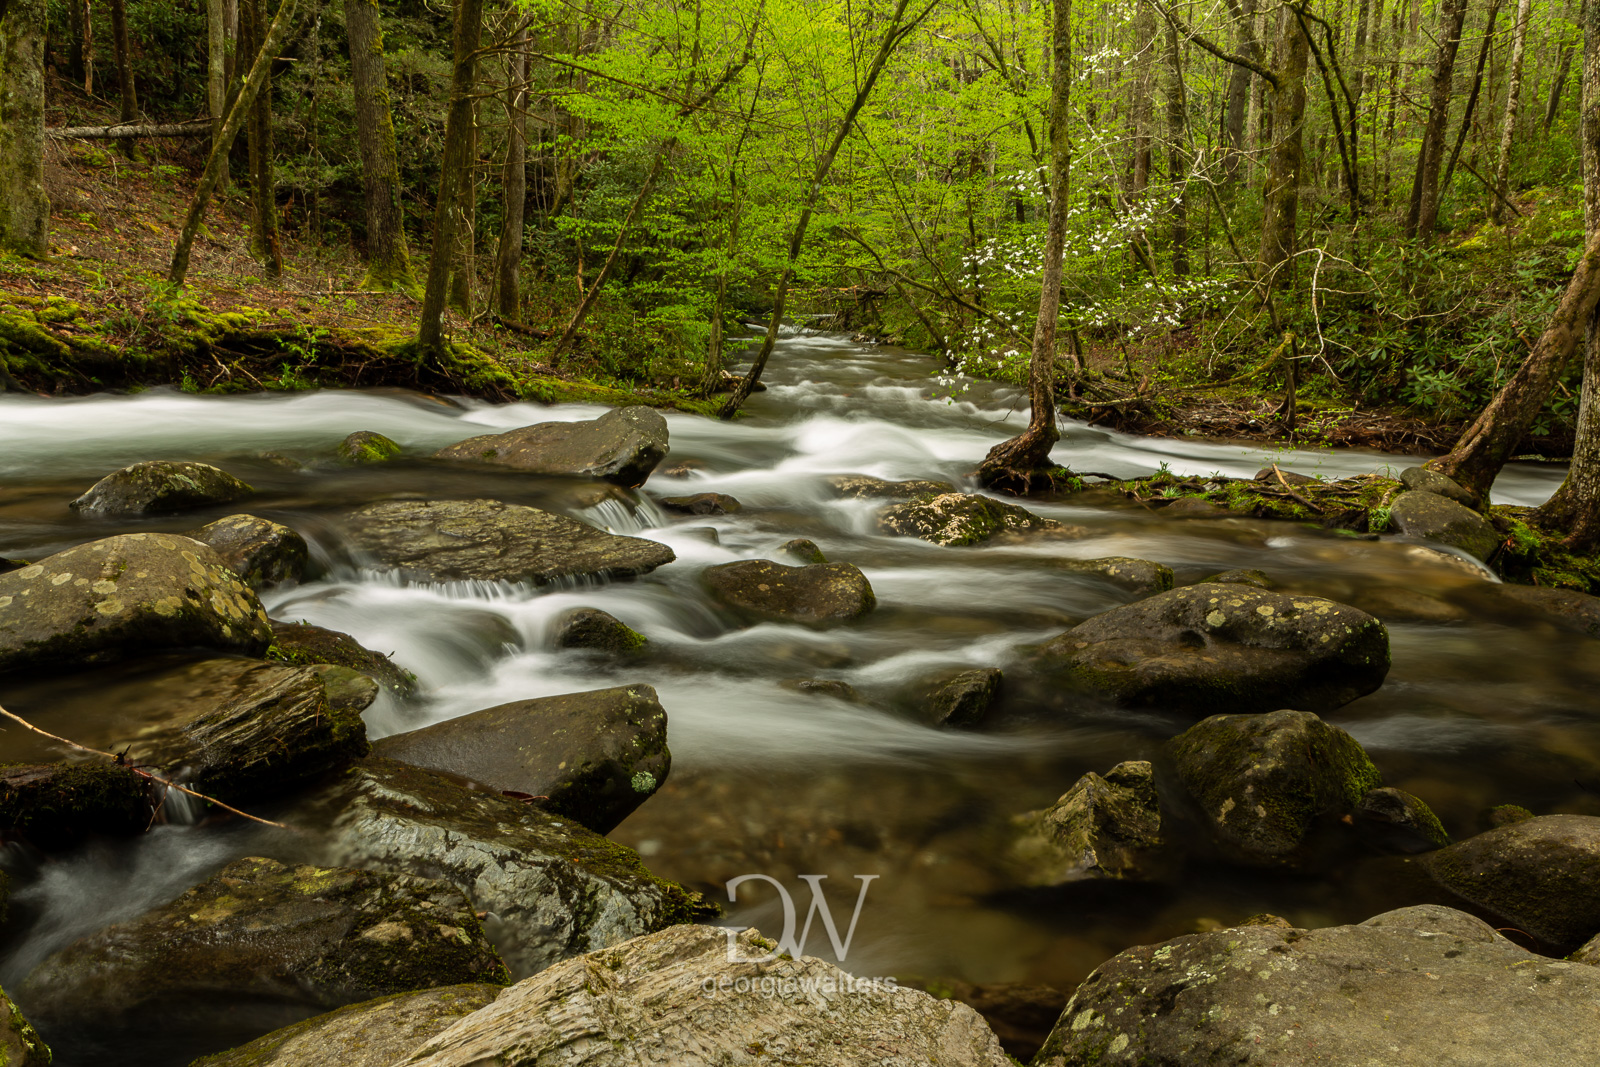 Rocky creek with misty water flowing through it.